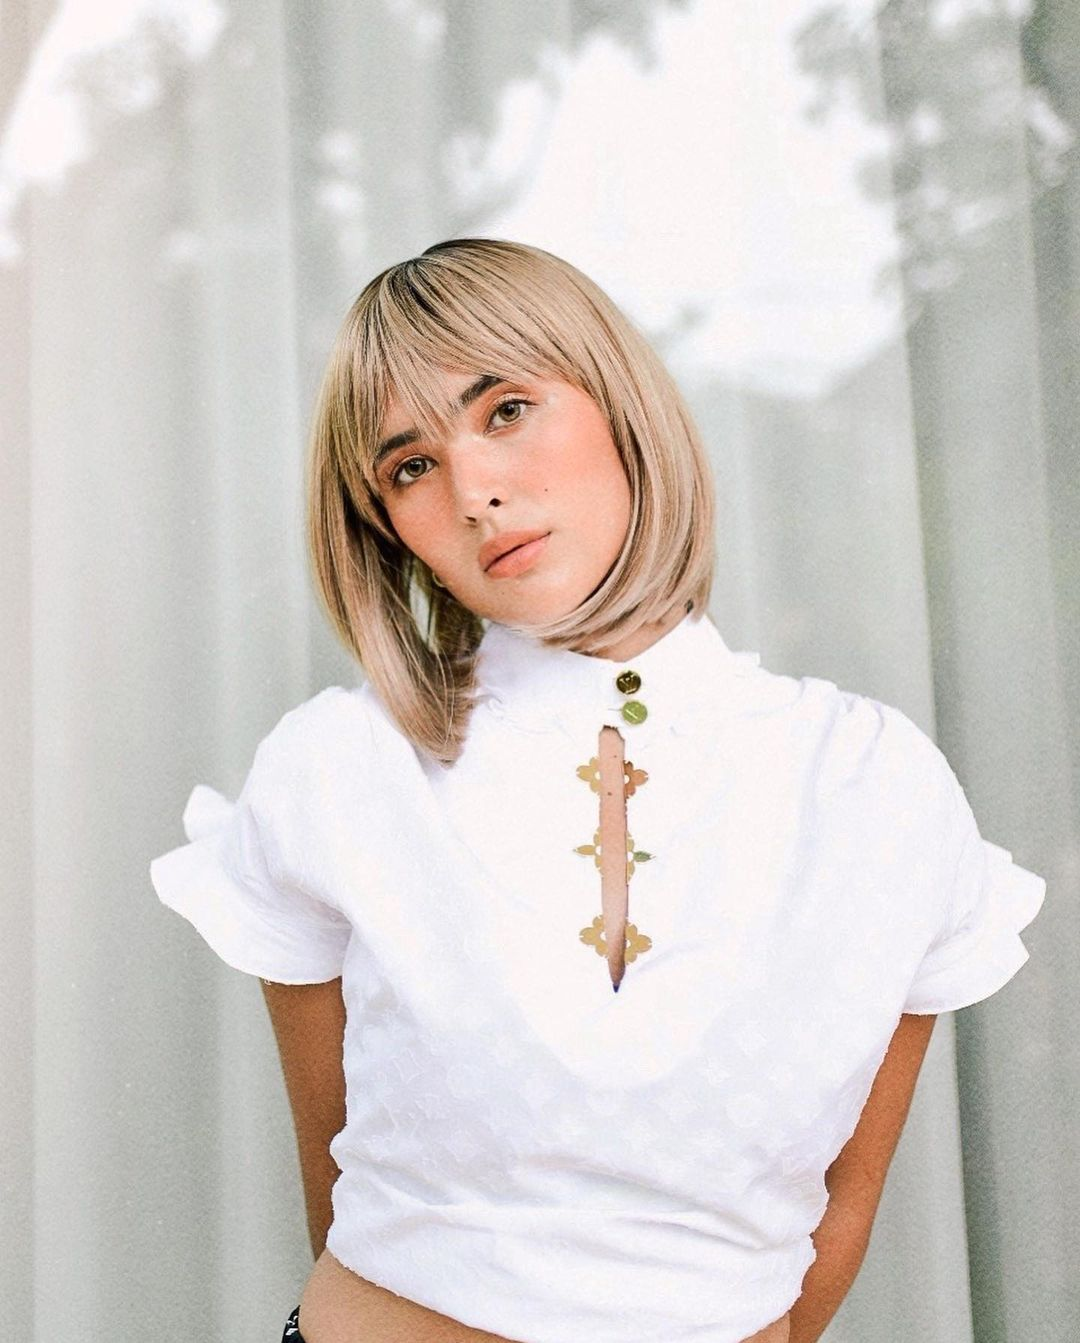 sofia andres louis vuitton birthday outfit